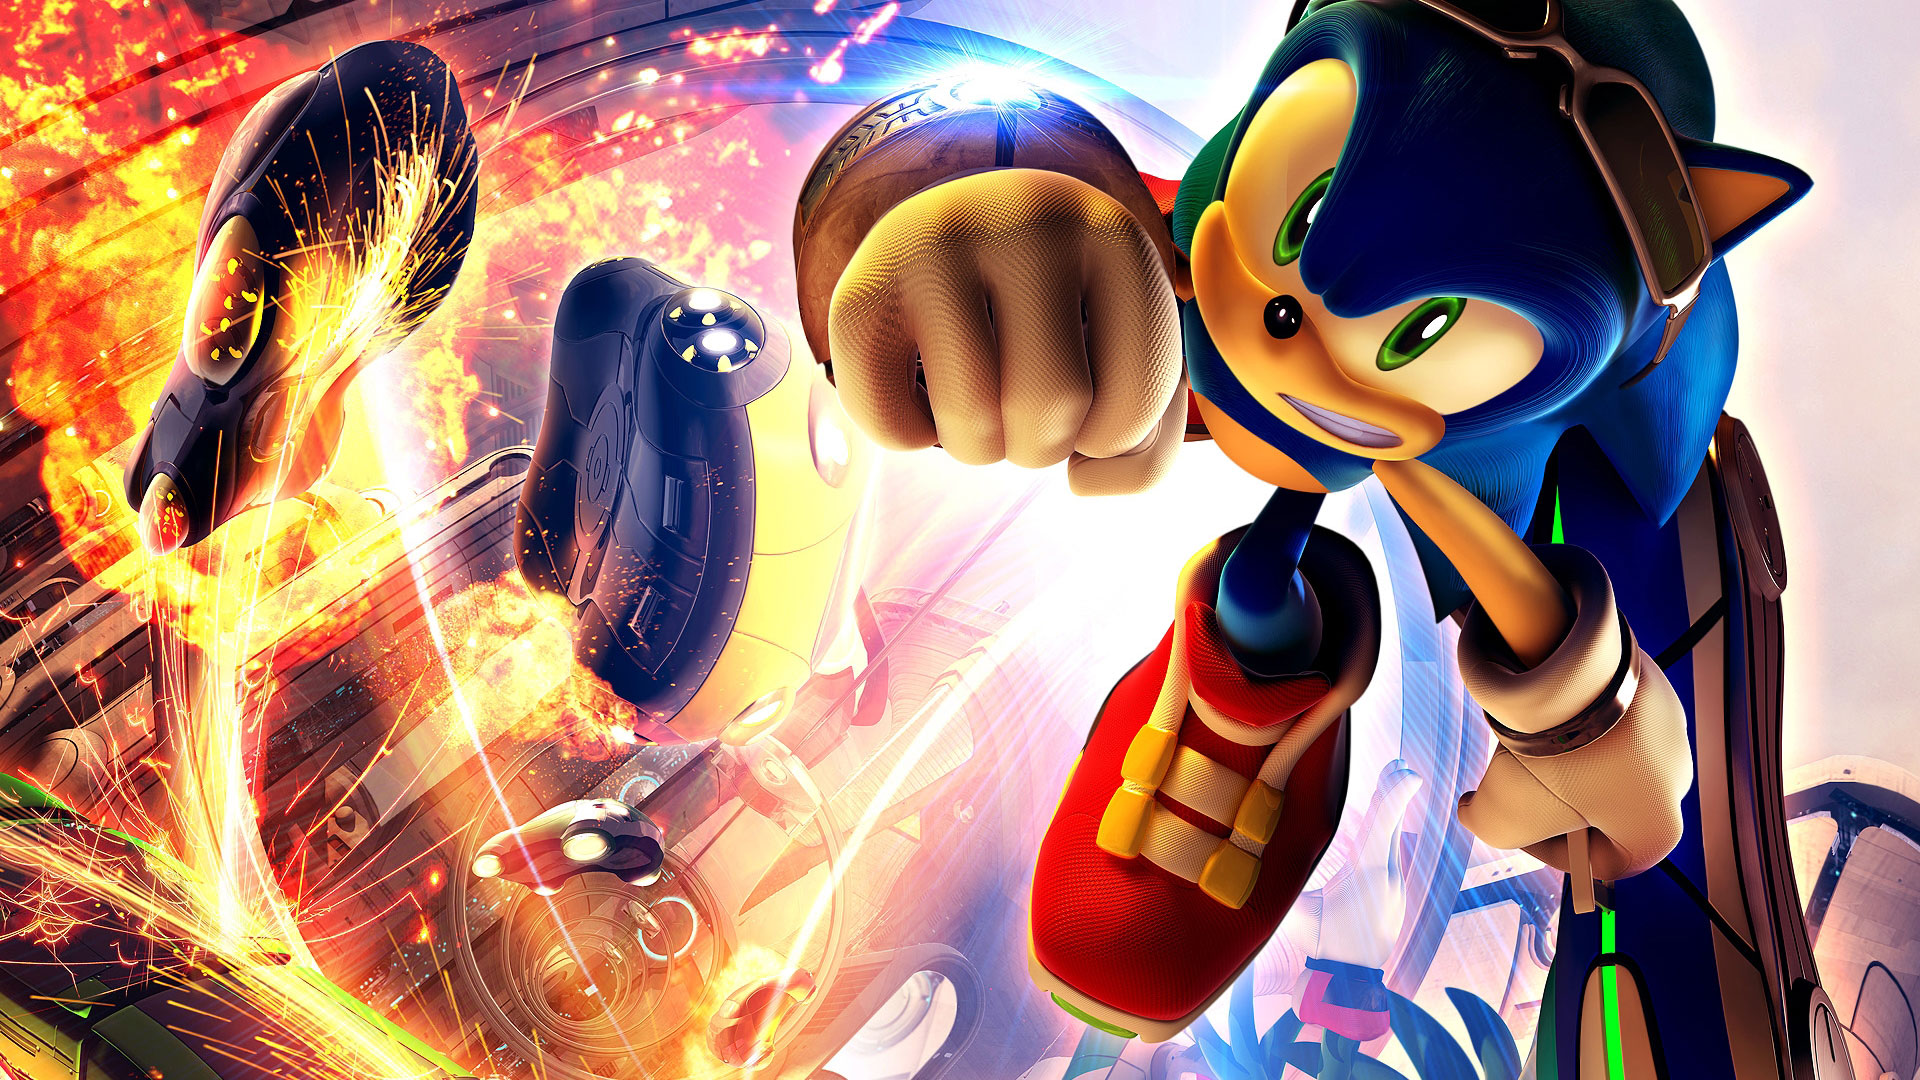 Hd wallpaper games - Sonic Riders 1080p Game Wallpapers Hd Wallpapers